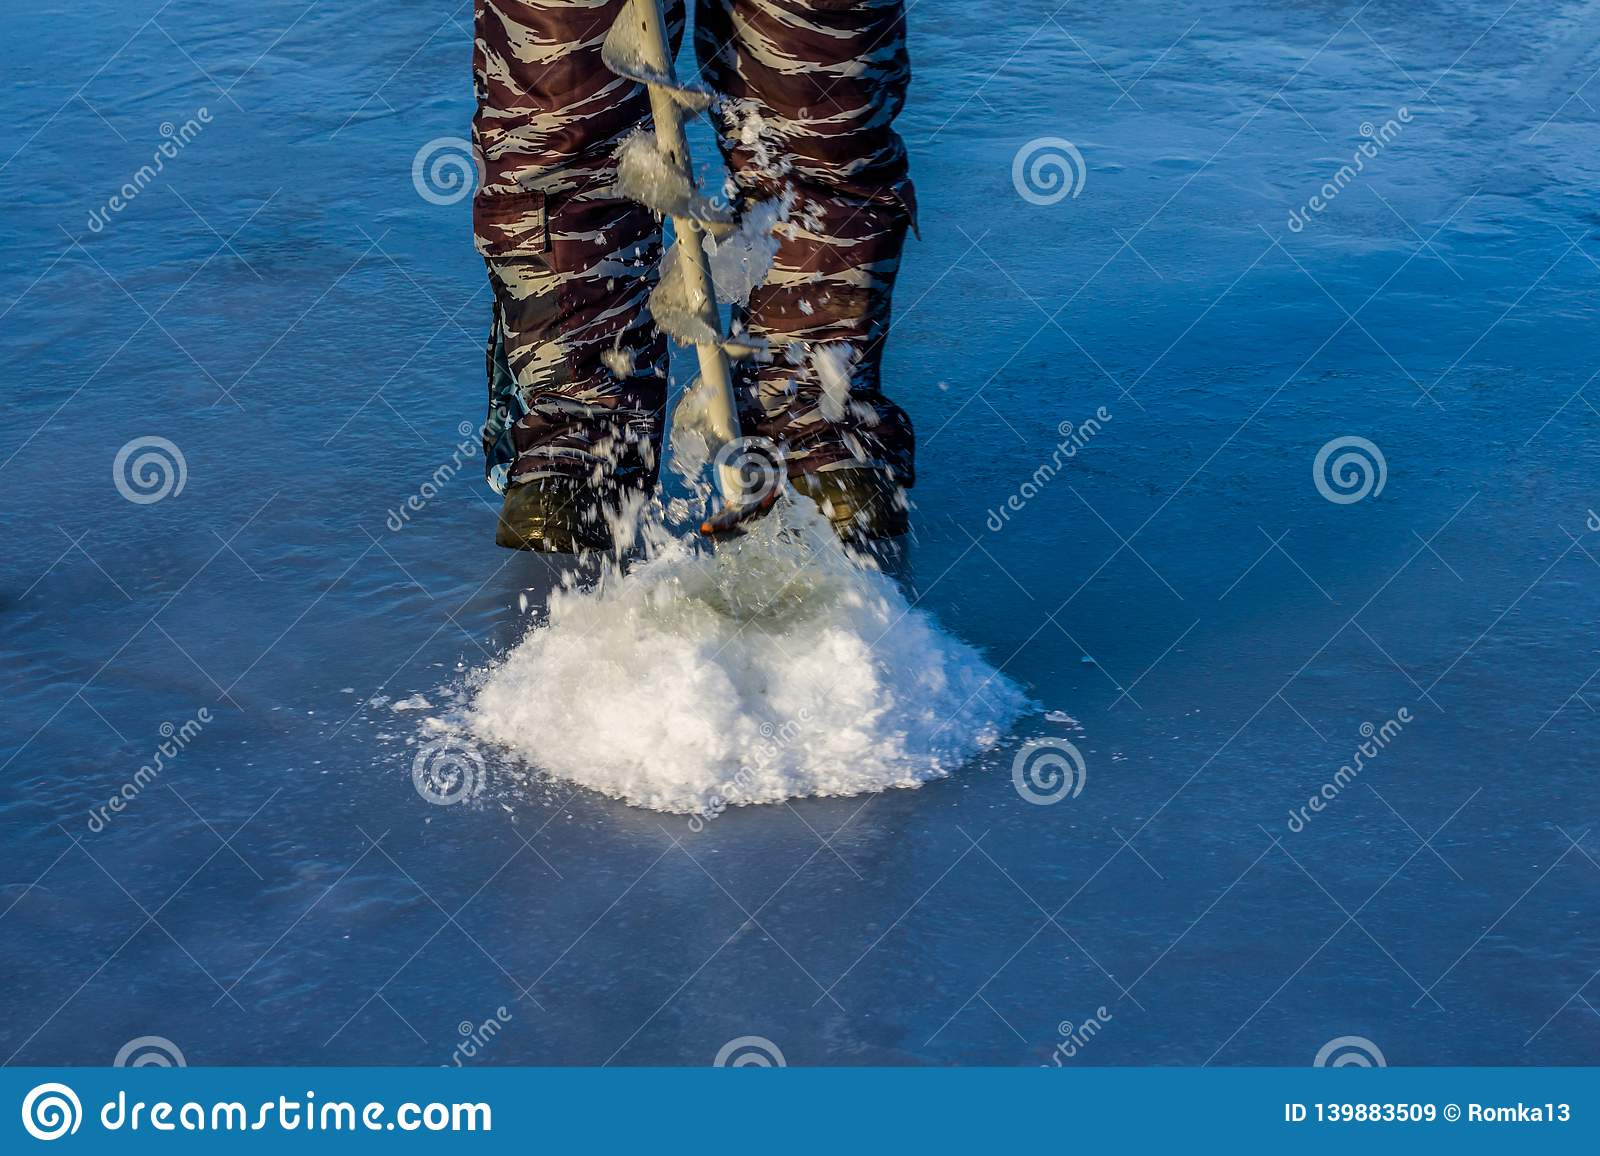 Fisherman drilling a hole in the ice